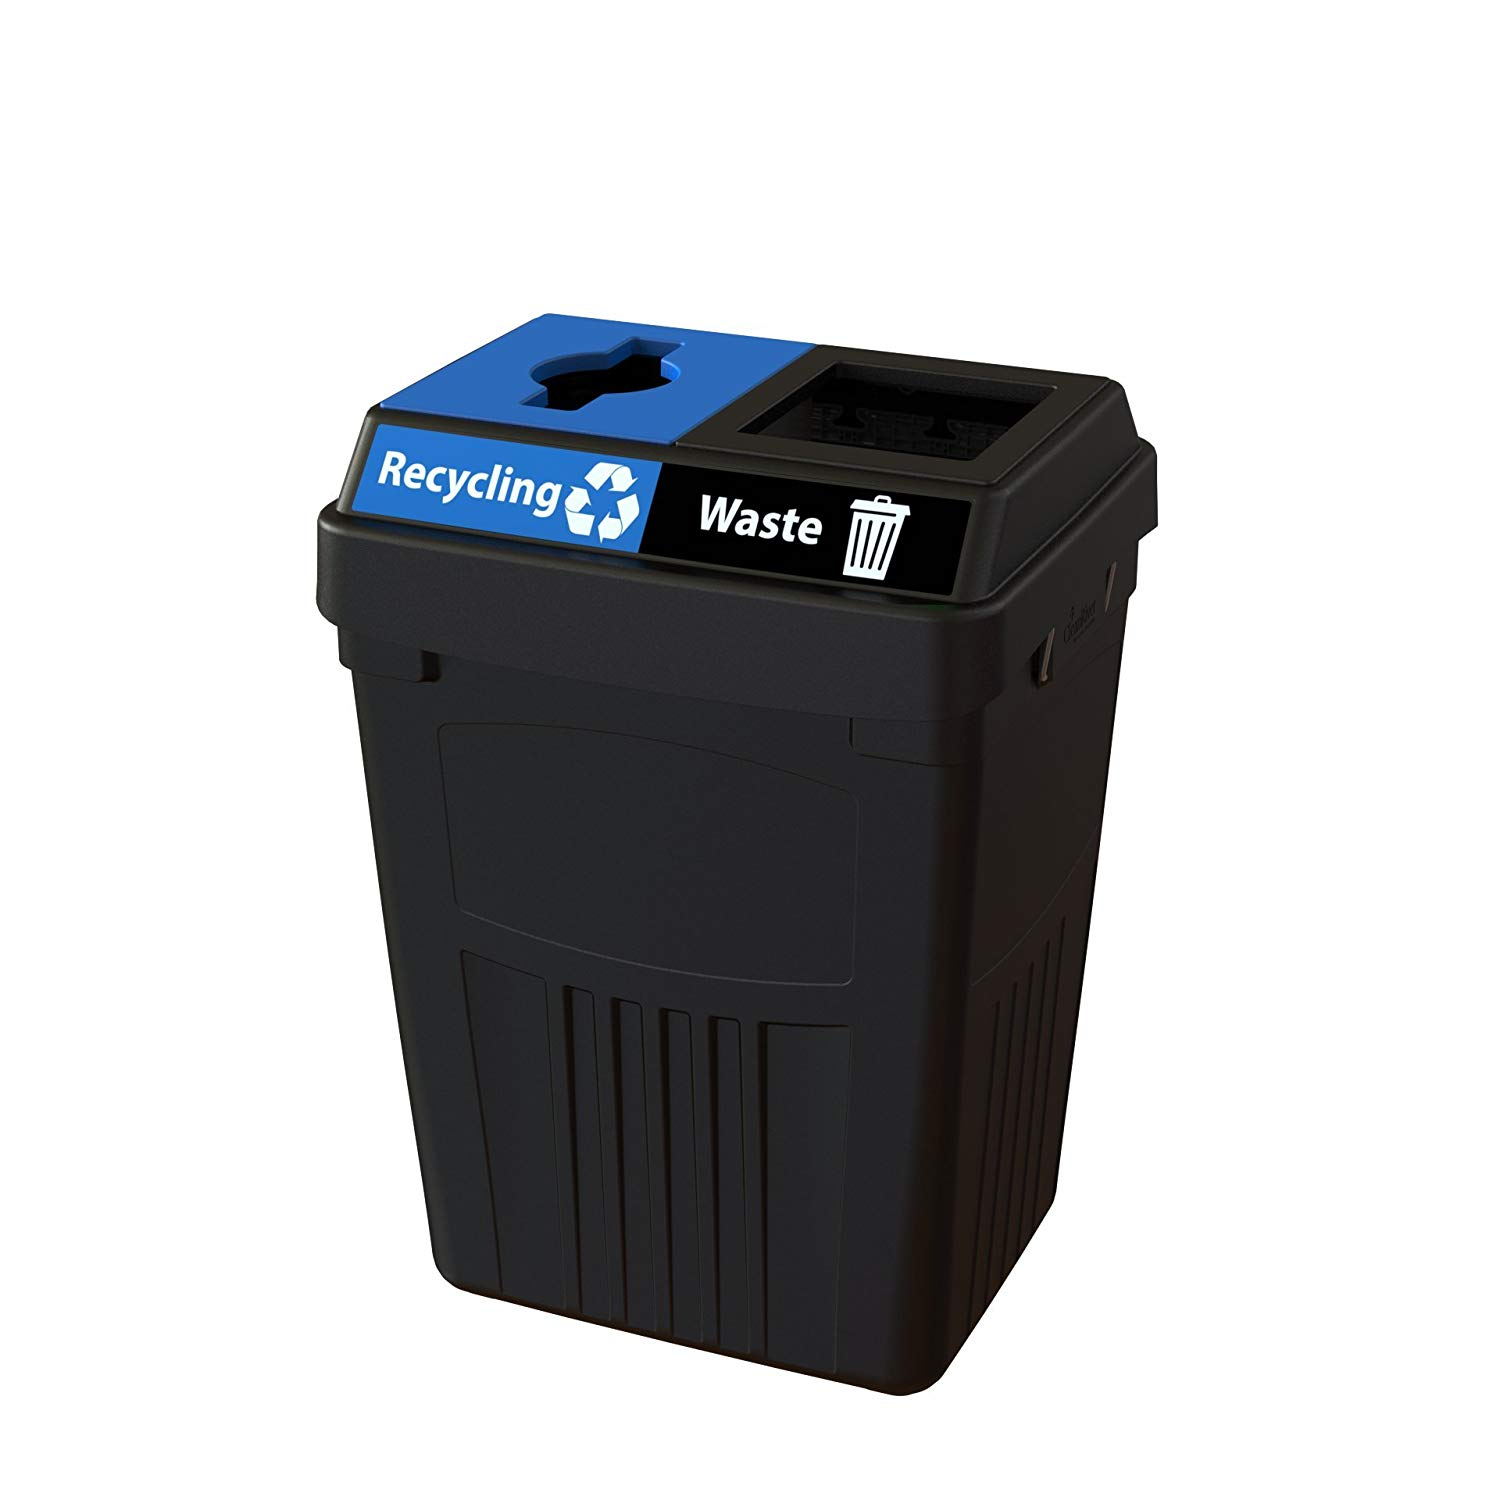 CleanRiver Flex E bin. Indoor and outdoor sturdy 2-in-1 waste and recycling bin. Collect 2 separate waste streams in one bin. 50-gallon-Black (FX50A-BK2-R-W)